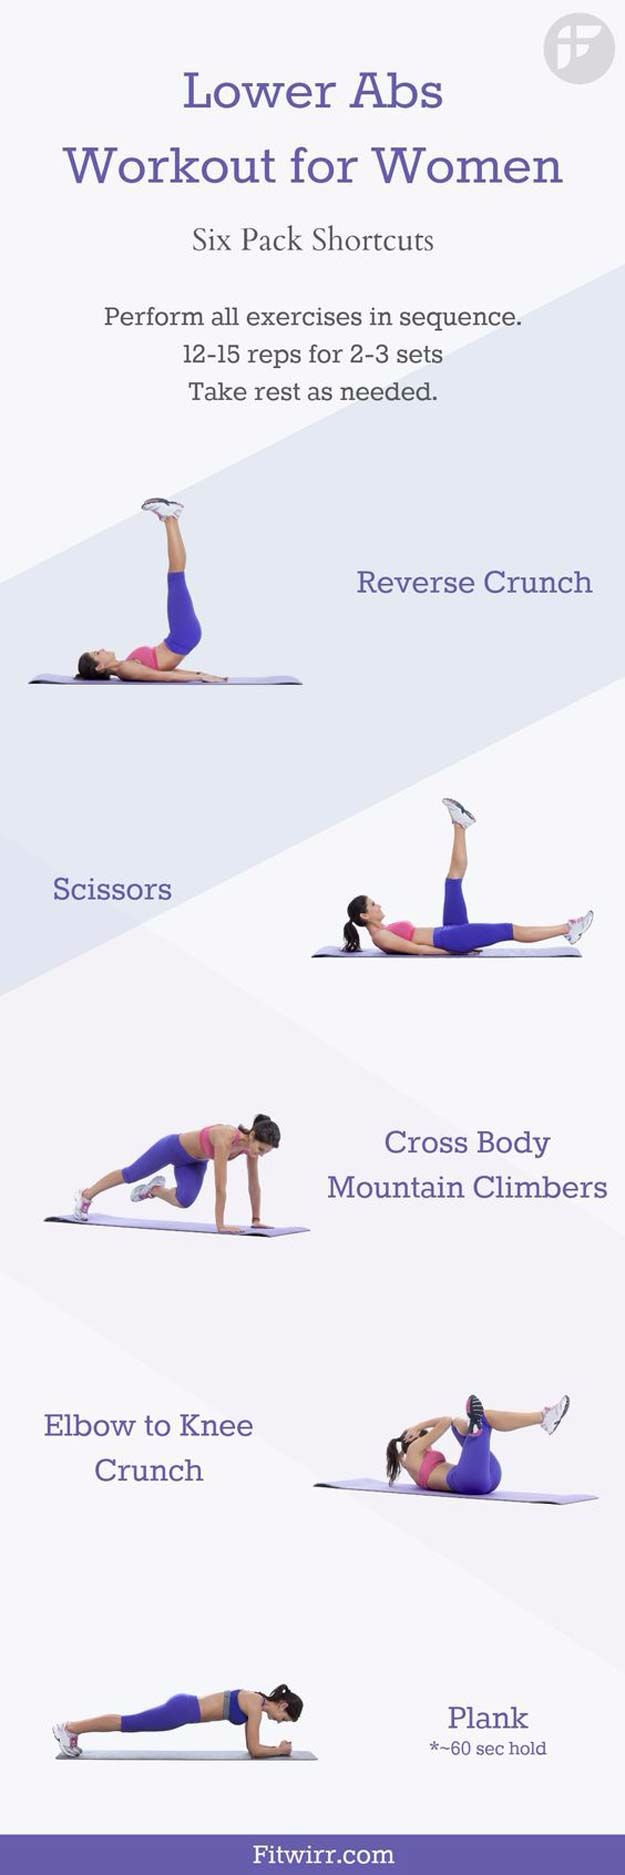 Best Exercises for 2018 - Best Lower Abs Workout for Women - Easy At Home Exercises - Quick Exercise Tutorials to Try at Lunch Break - Ways To Get In Shape - Butt, Abs, Arms, Legs, Thighs, Tummy http://diyjoy.com/best-at-home-exercises-2018